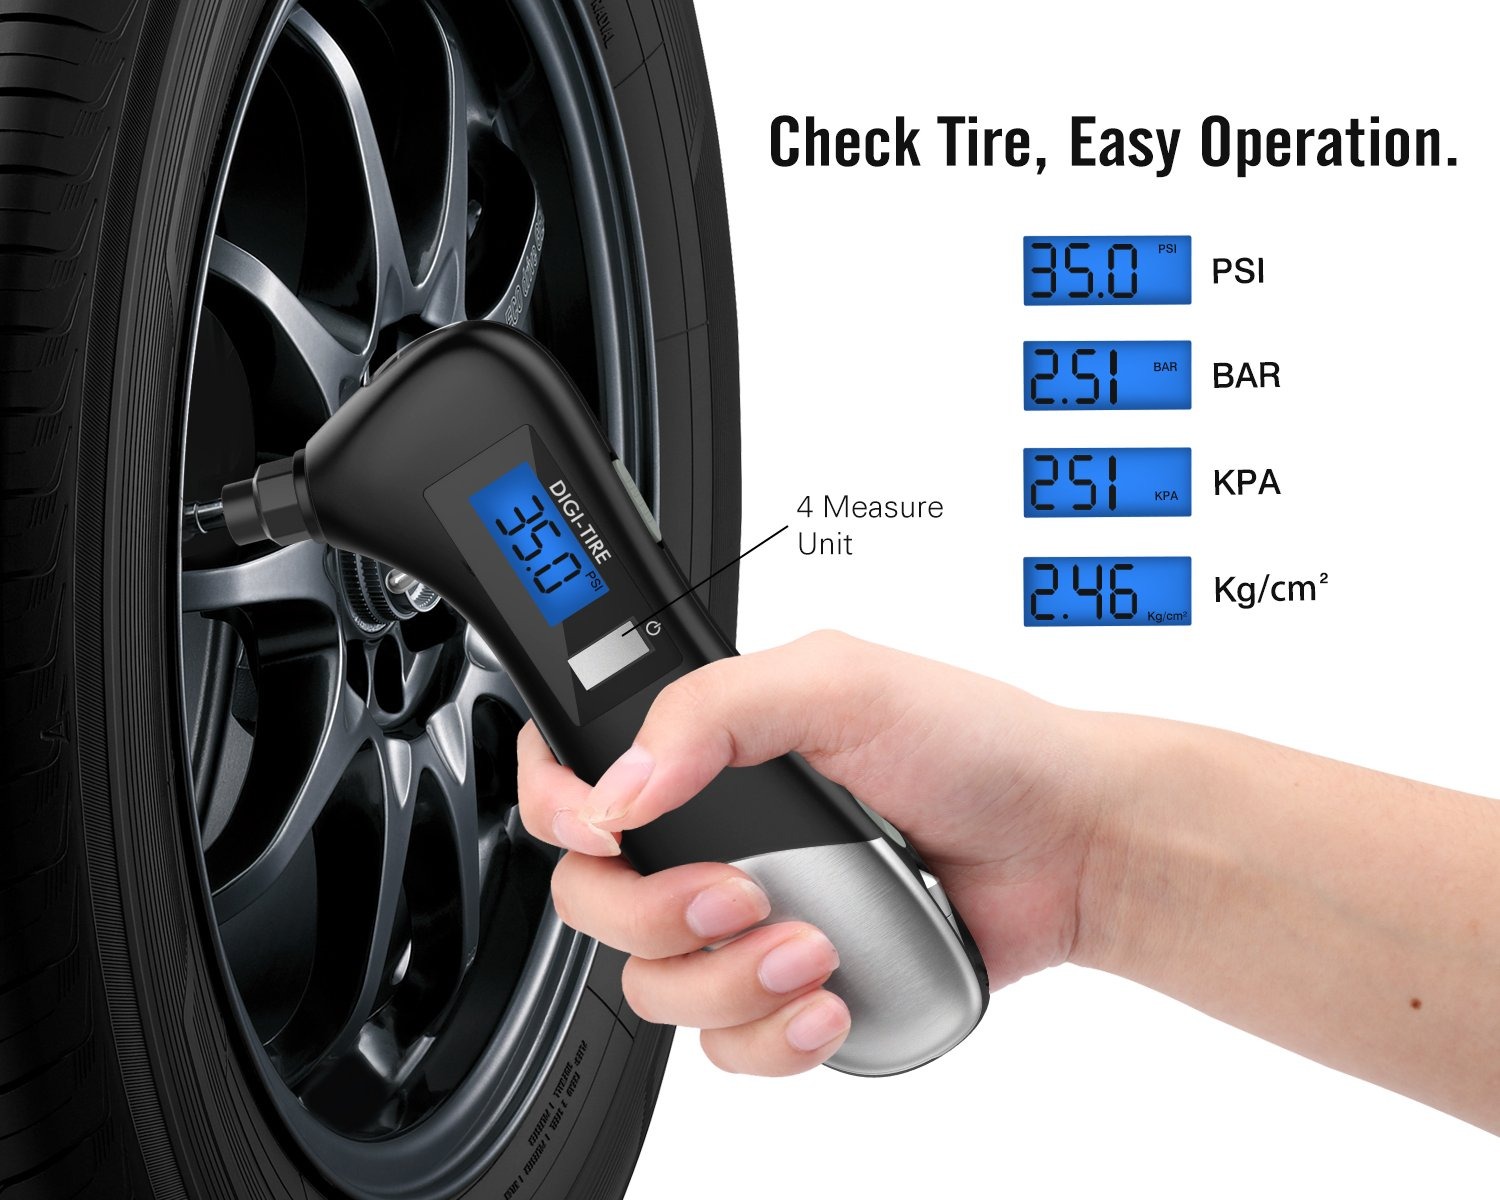 Black MoKo 9-in-1 Digital Tire Pressure Gauge Multitool with Built-in 8 Emergency Tools for Car All Vehicles